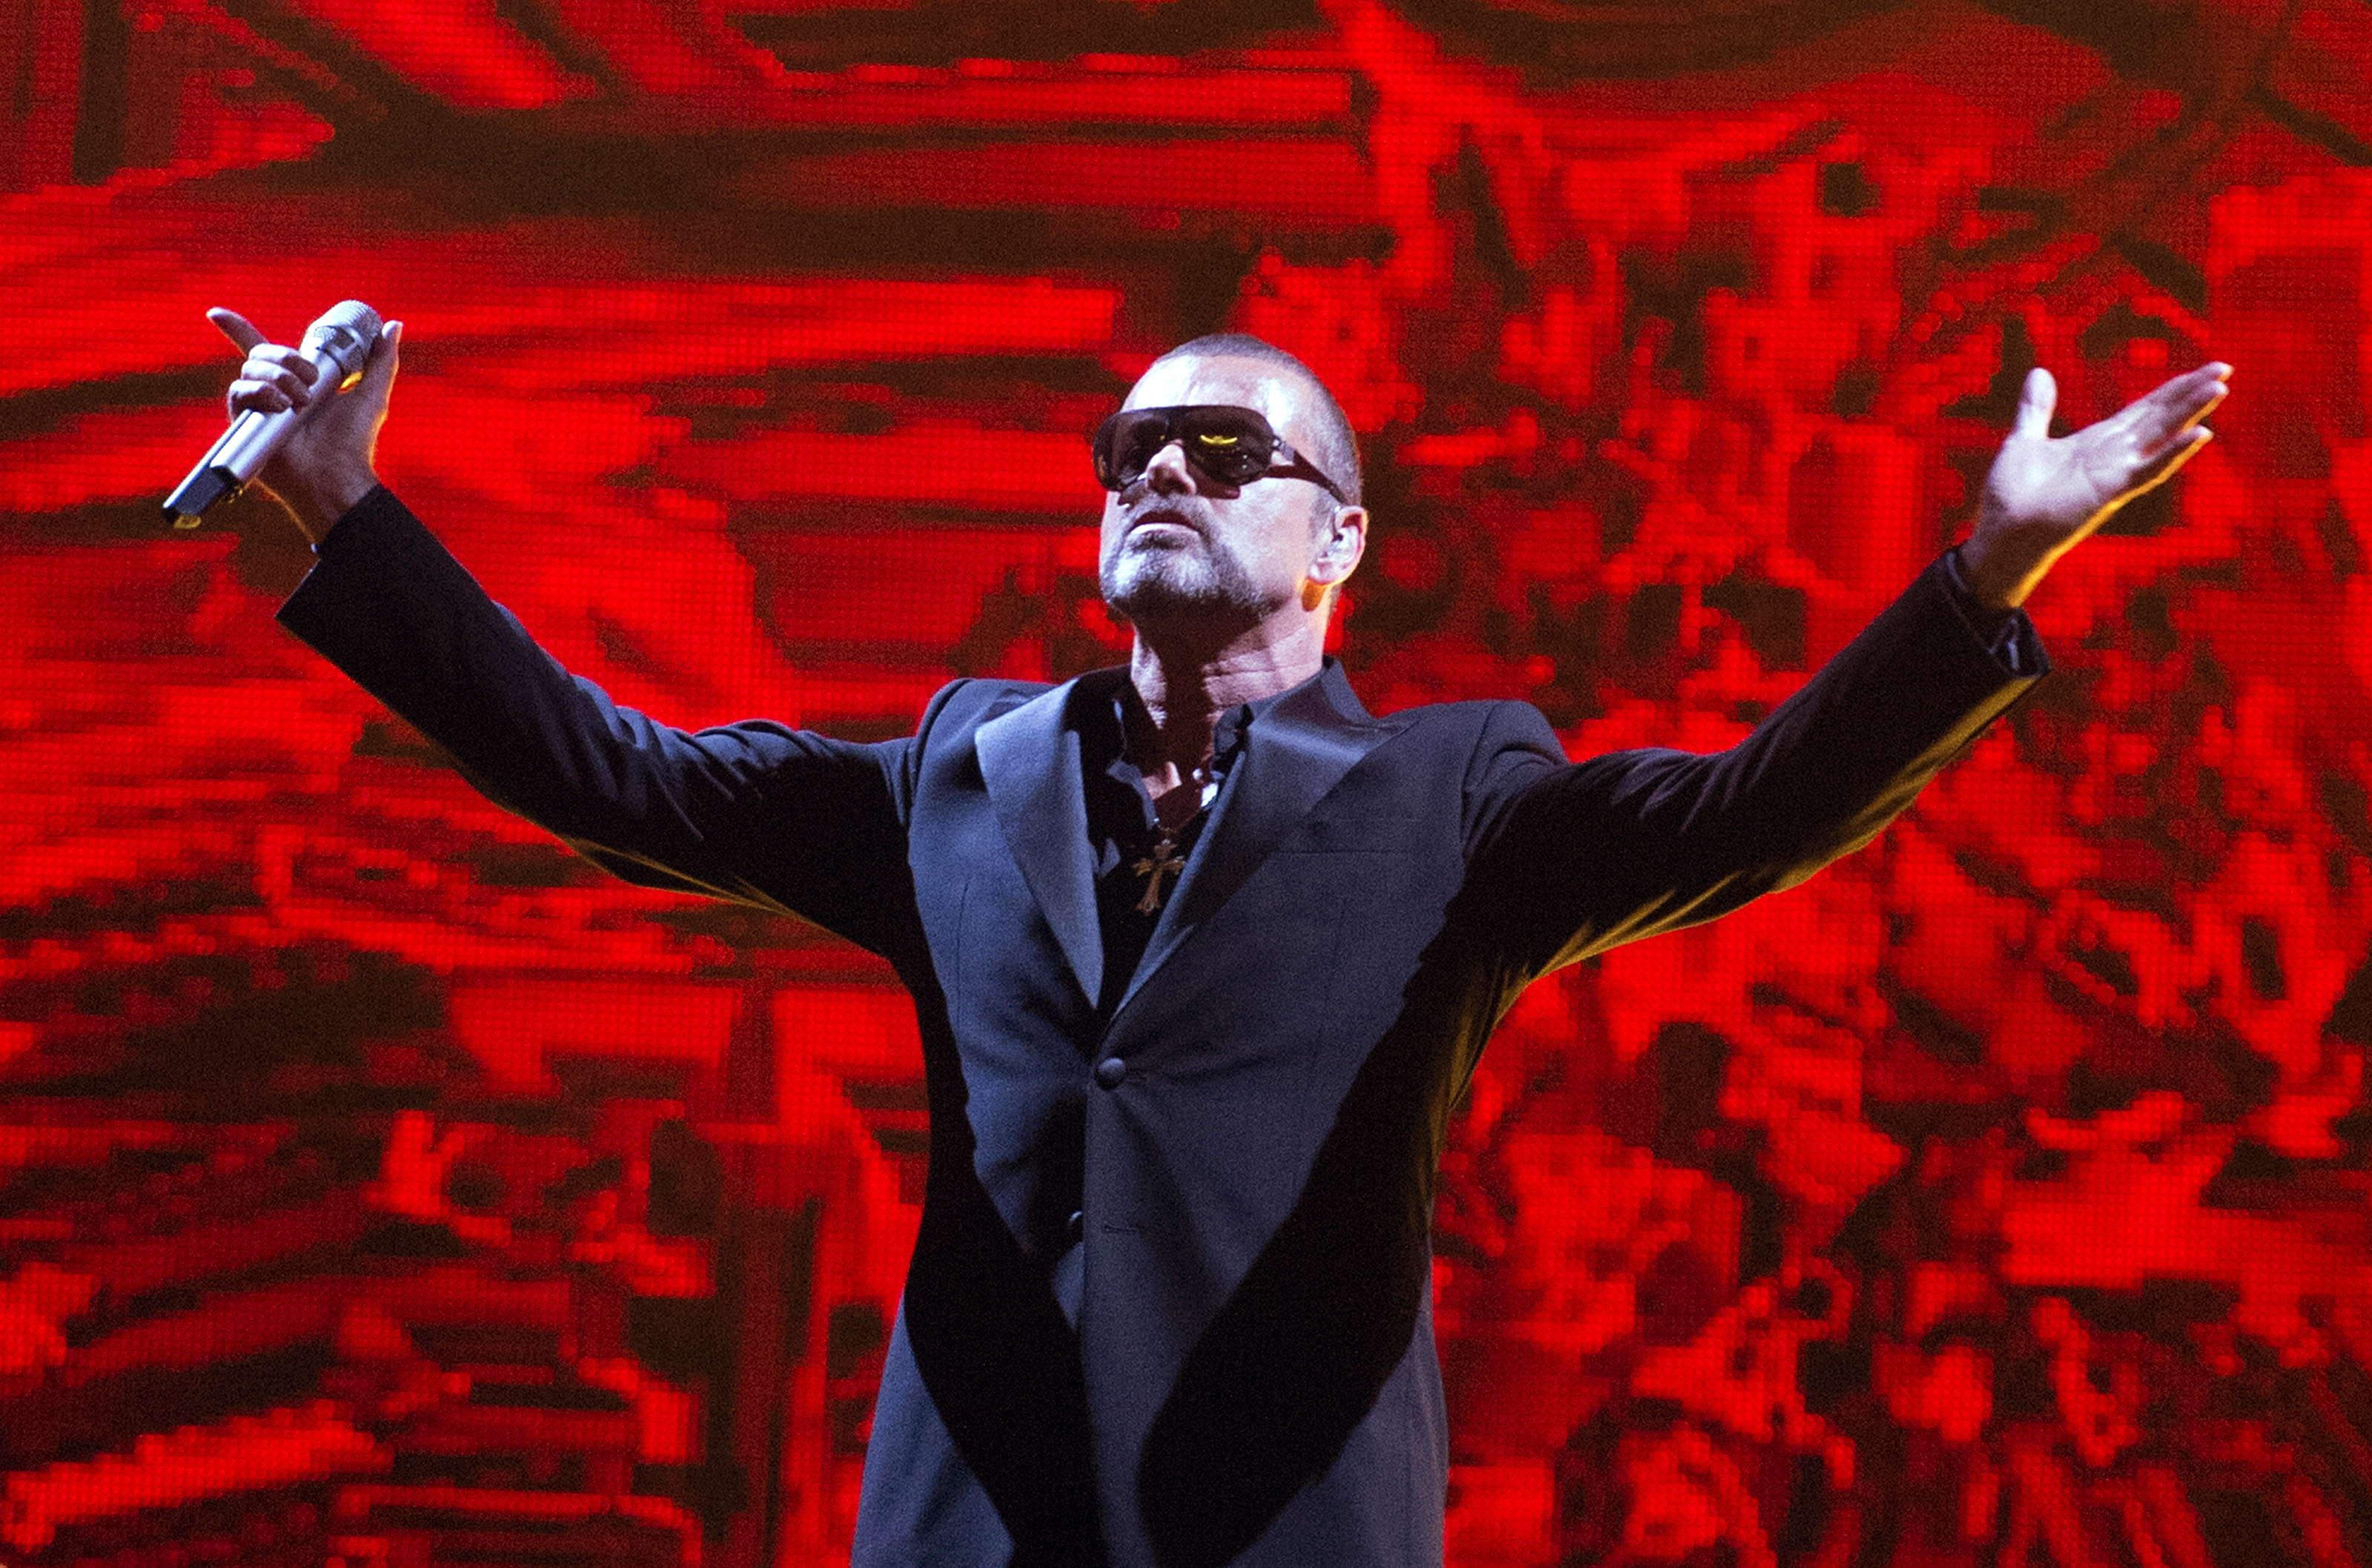 George Michael performs on stage during a charity gala in Paris in 2012. His sister died on Christmas Day, three years to the date of his passing.